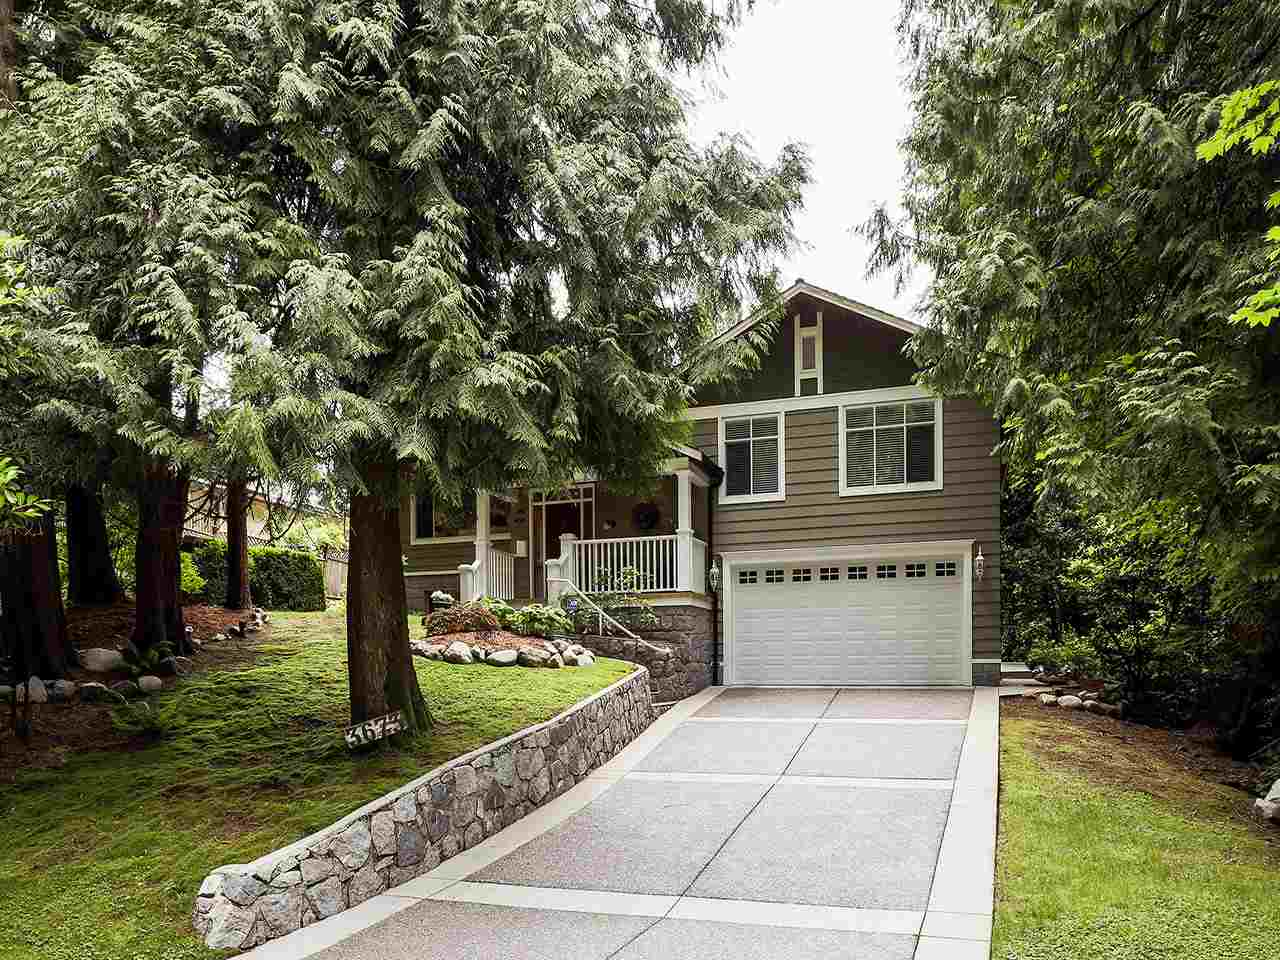 Main Photo: 3673 PRINCESS AVENUE in North Vancouver: Princess Park House for sale : MLS®# R2205304